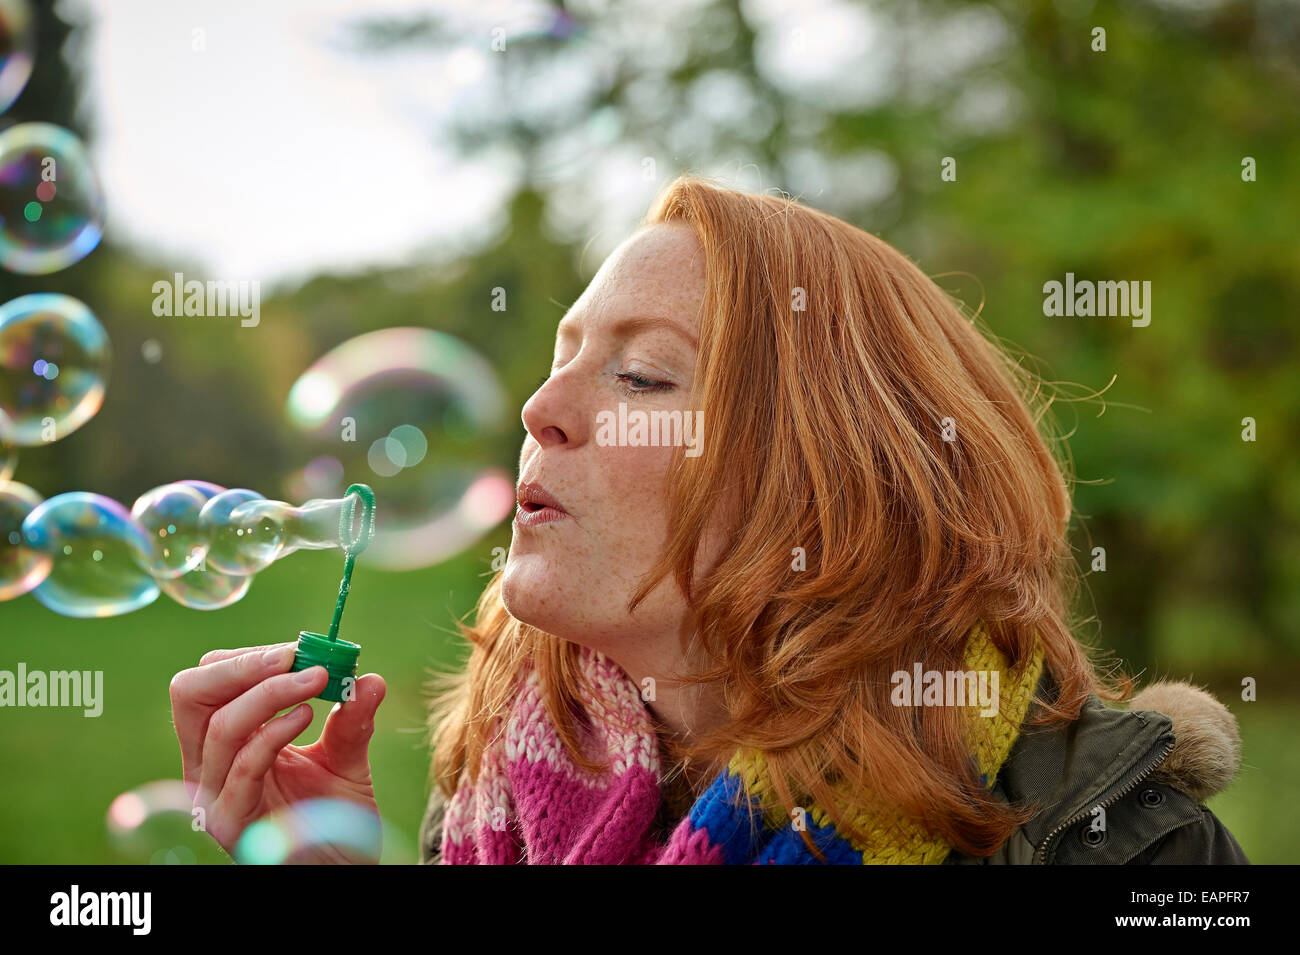 Woman blowing rainbow bubbles - Stock Image